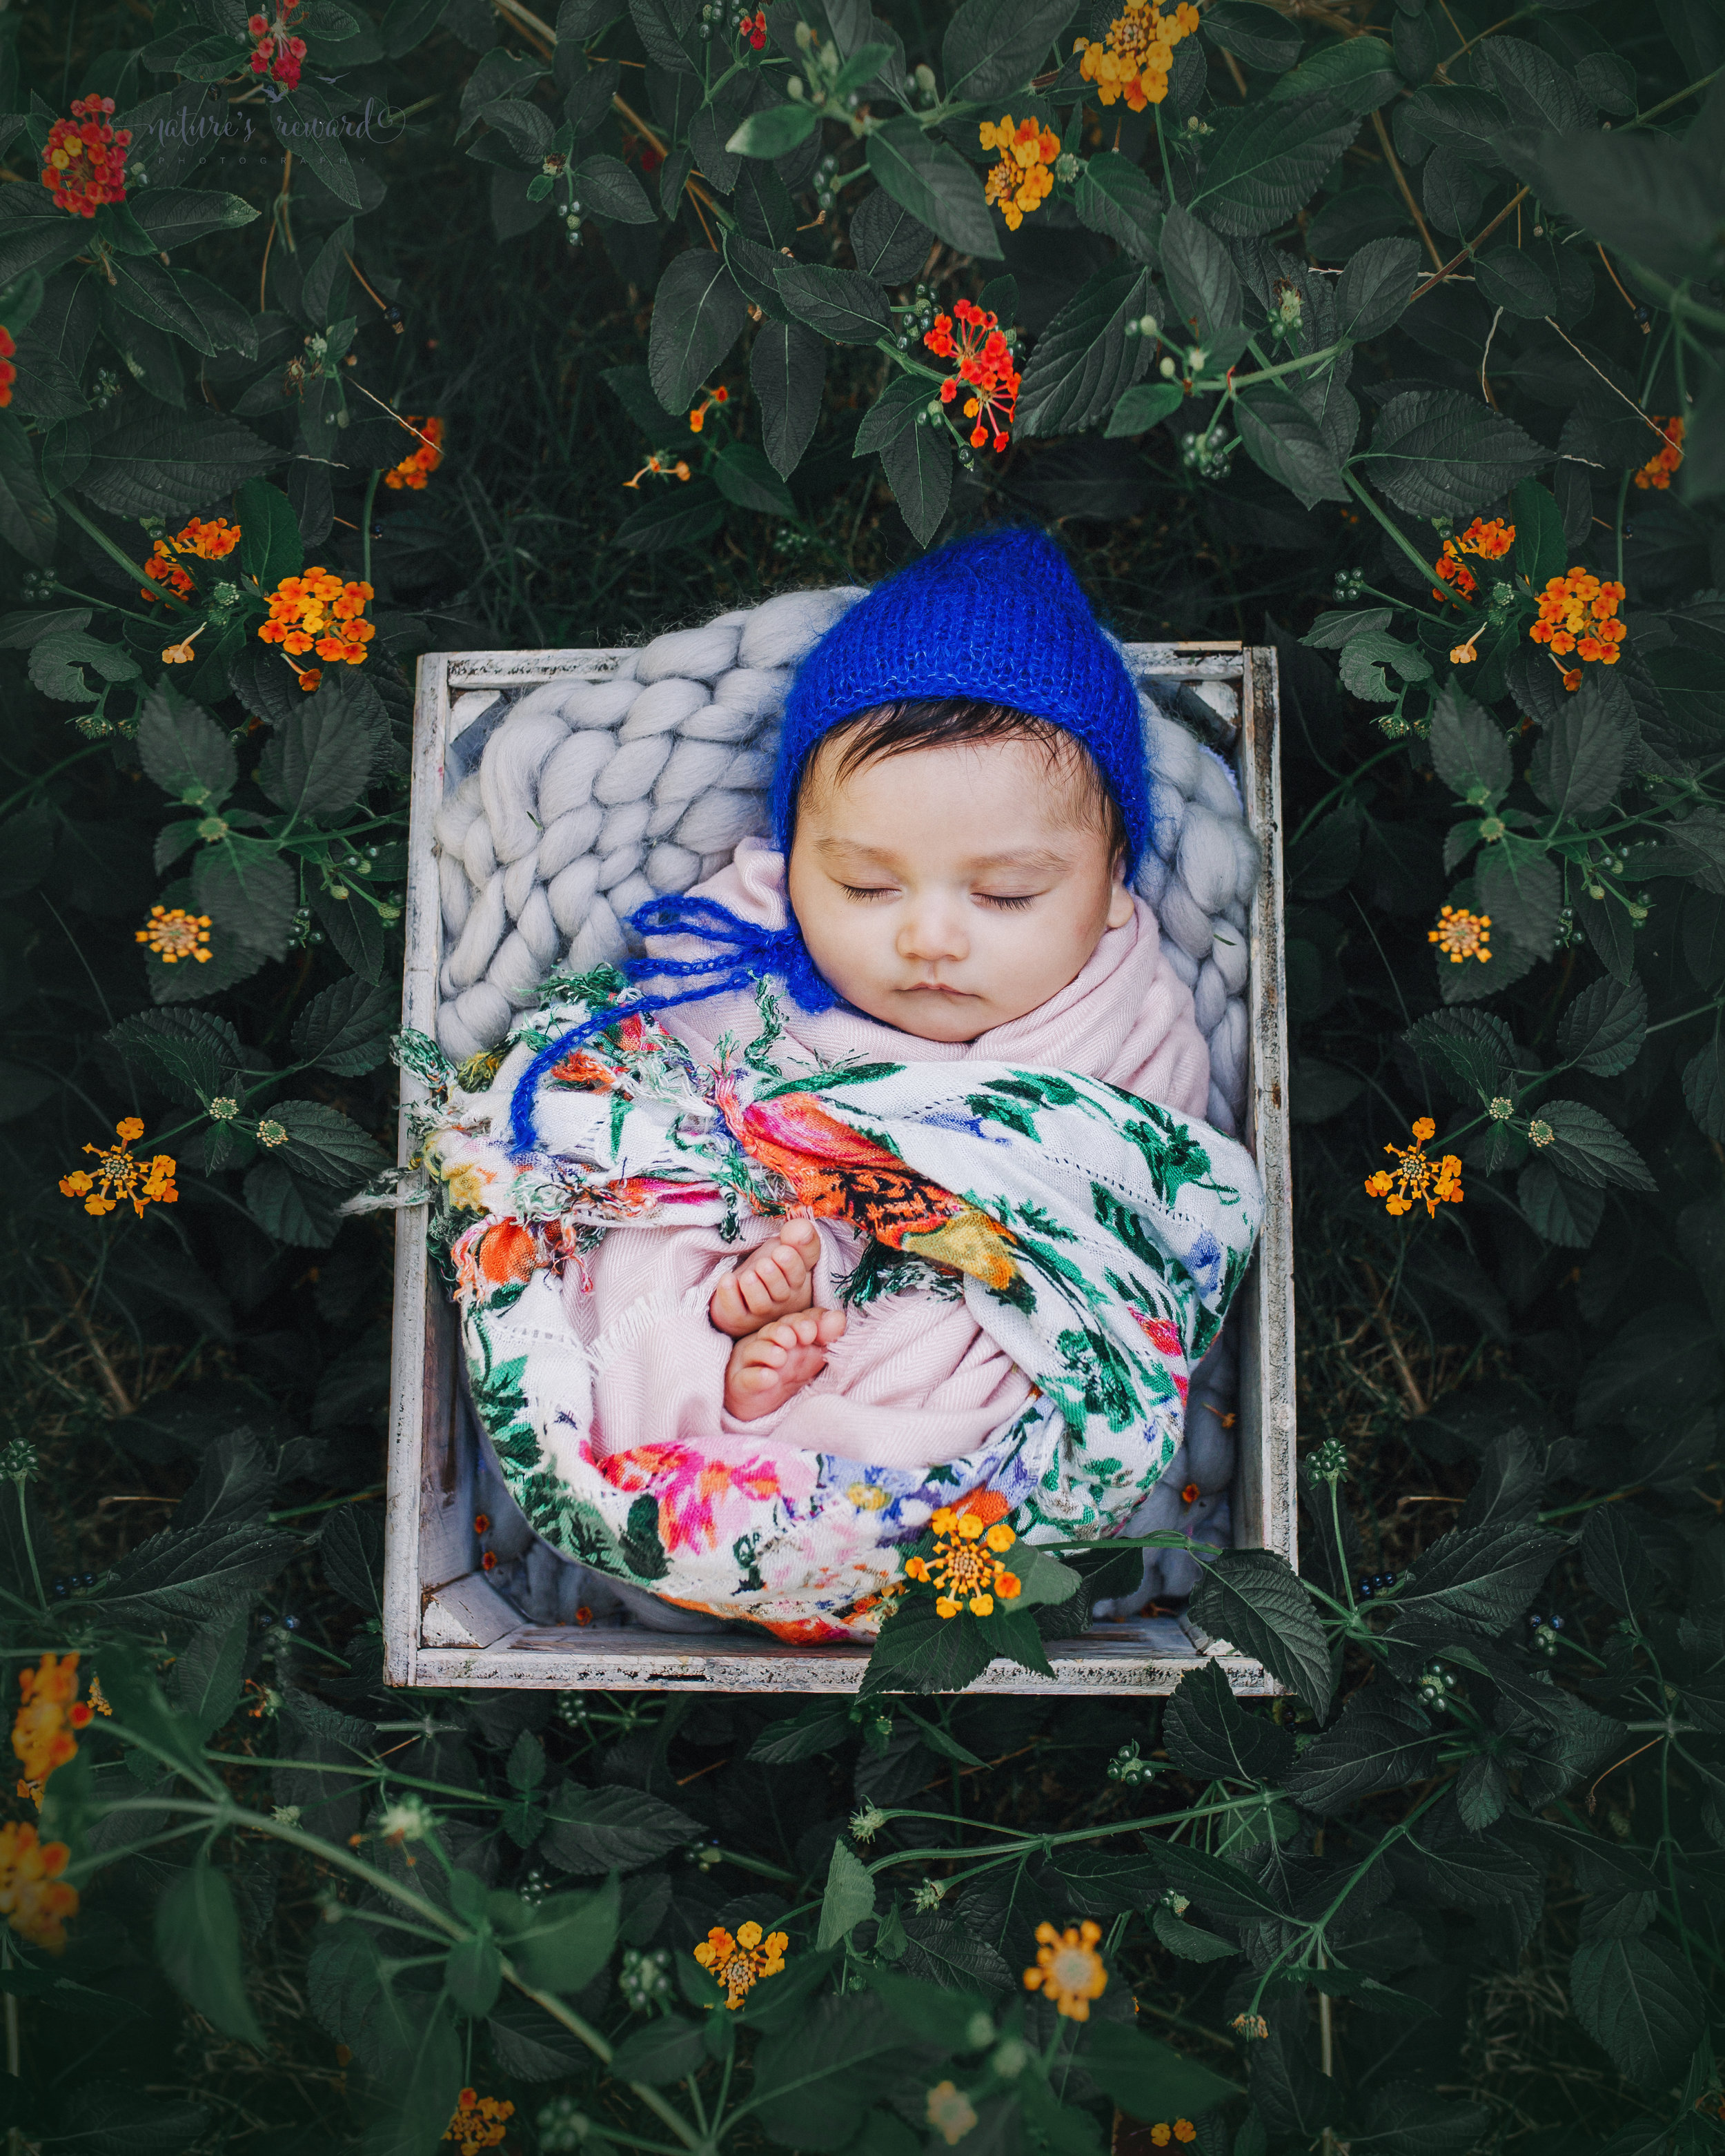 Lovely 10 week old newborn baby girl swaddled in pink, with a pop of color and a blue bonnet- a portrait by Nature's Reward Photography